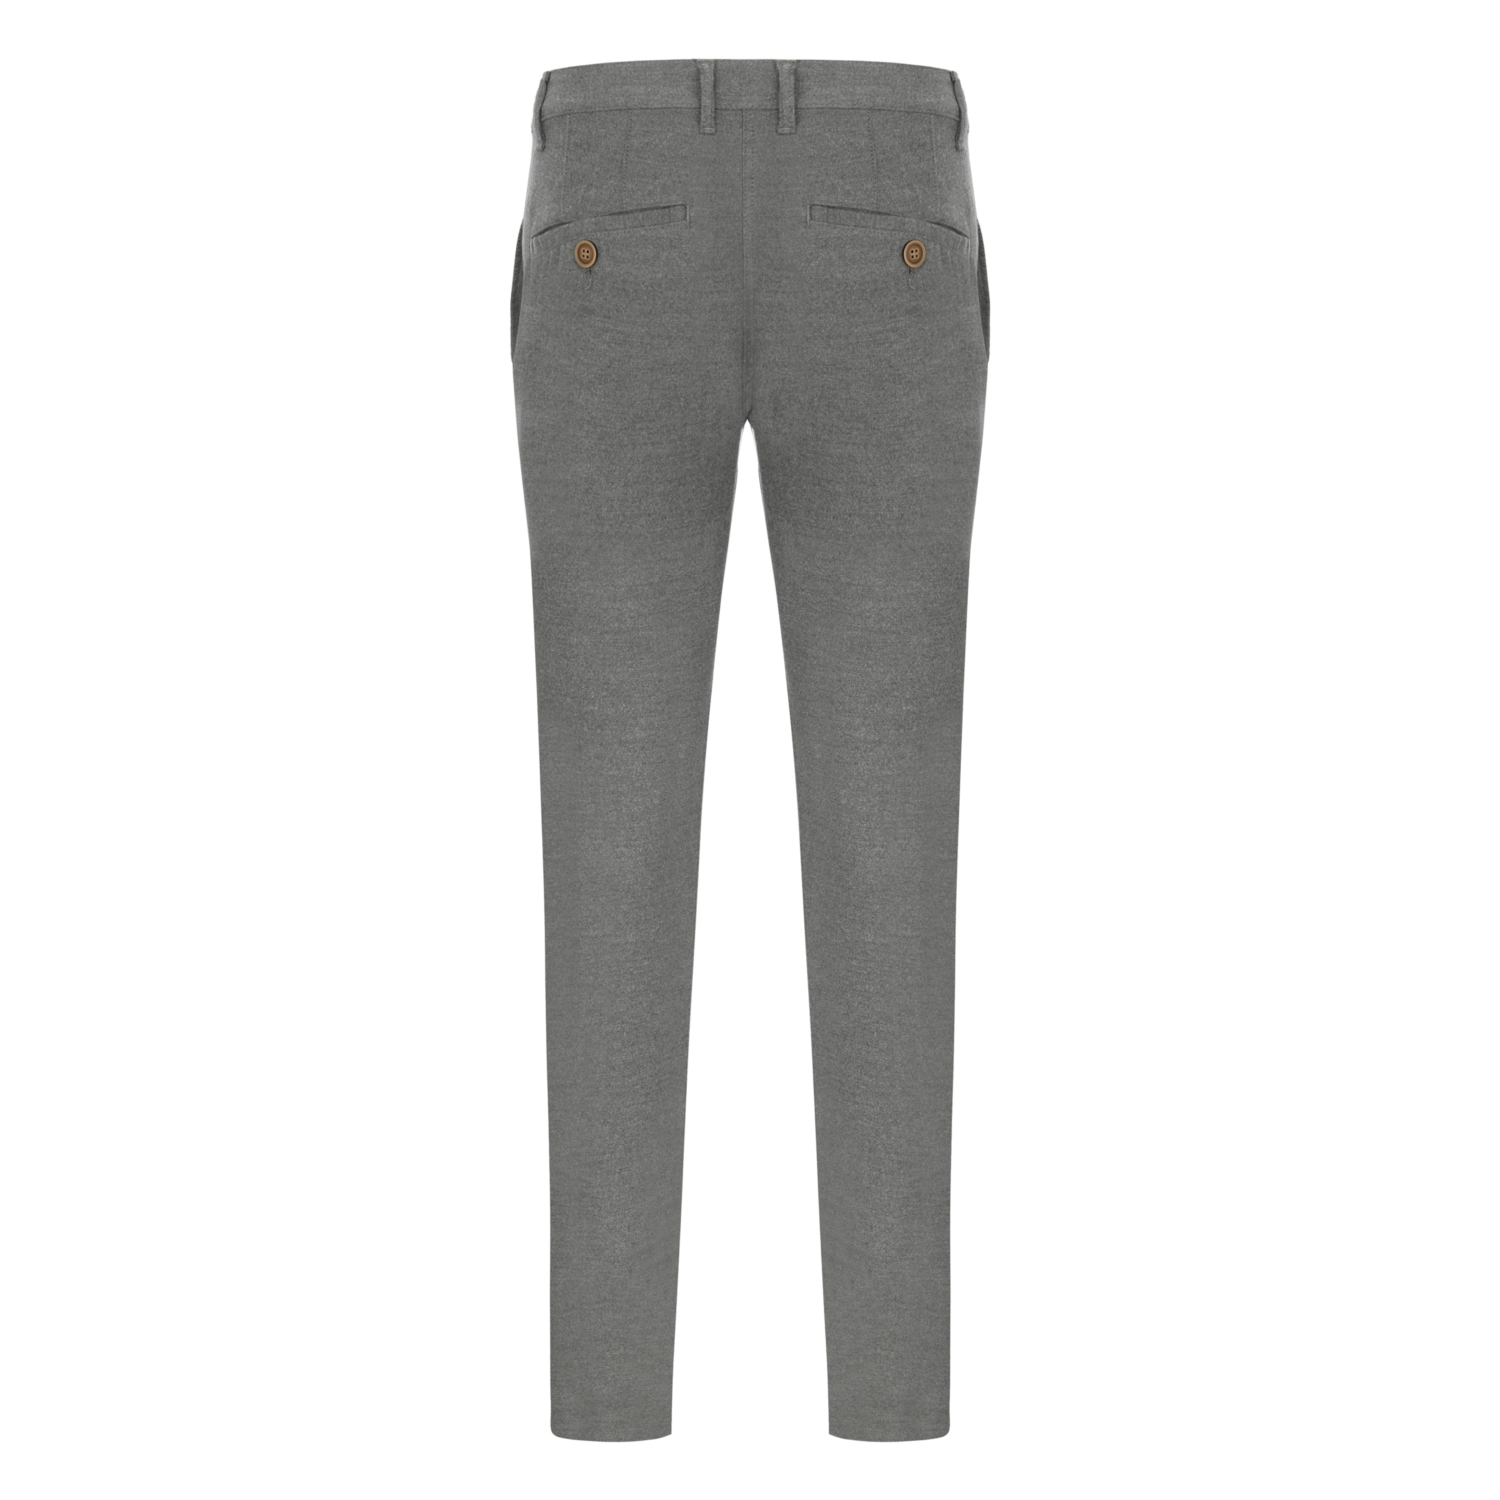 Erkek HAKİ SLIM FİT CHINO PANTOLON 1211642|MUDO